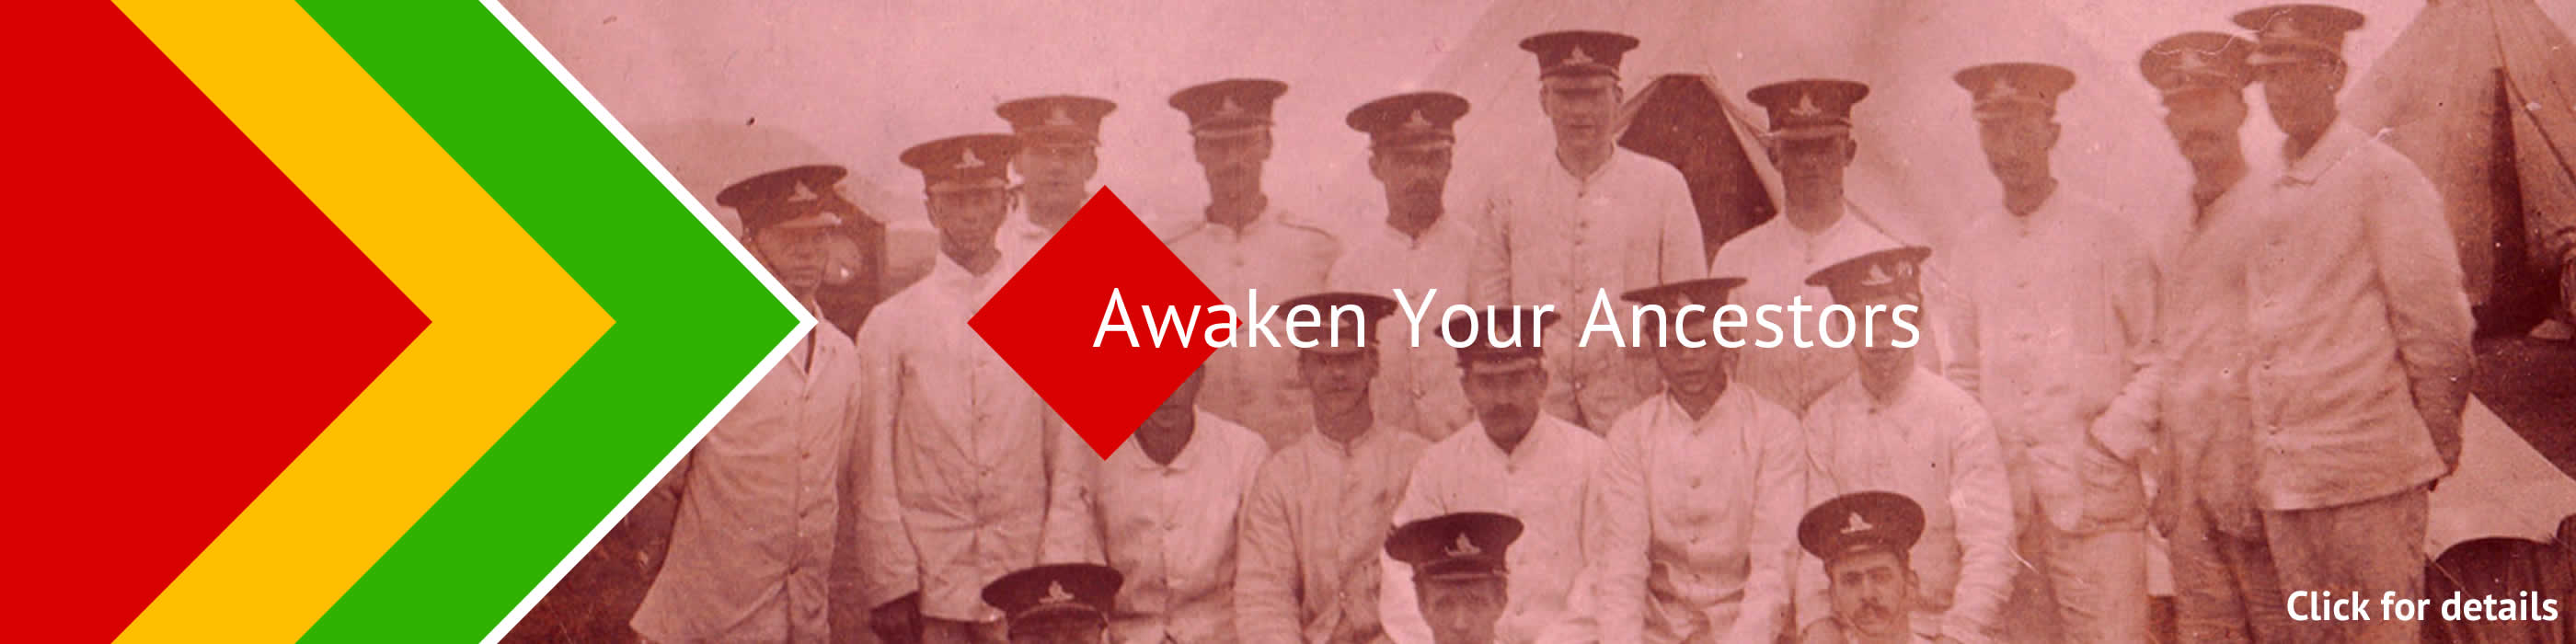 Awaken Your Ancestors - The Family History Correspondence Course